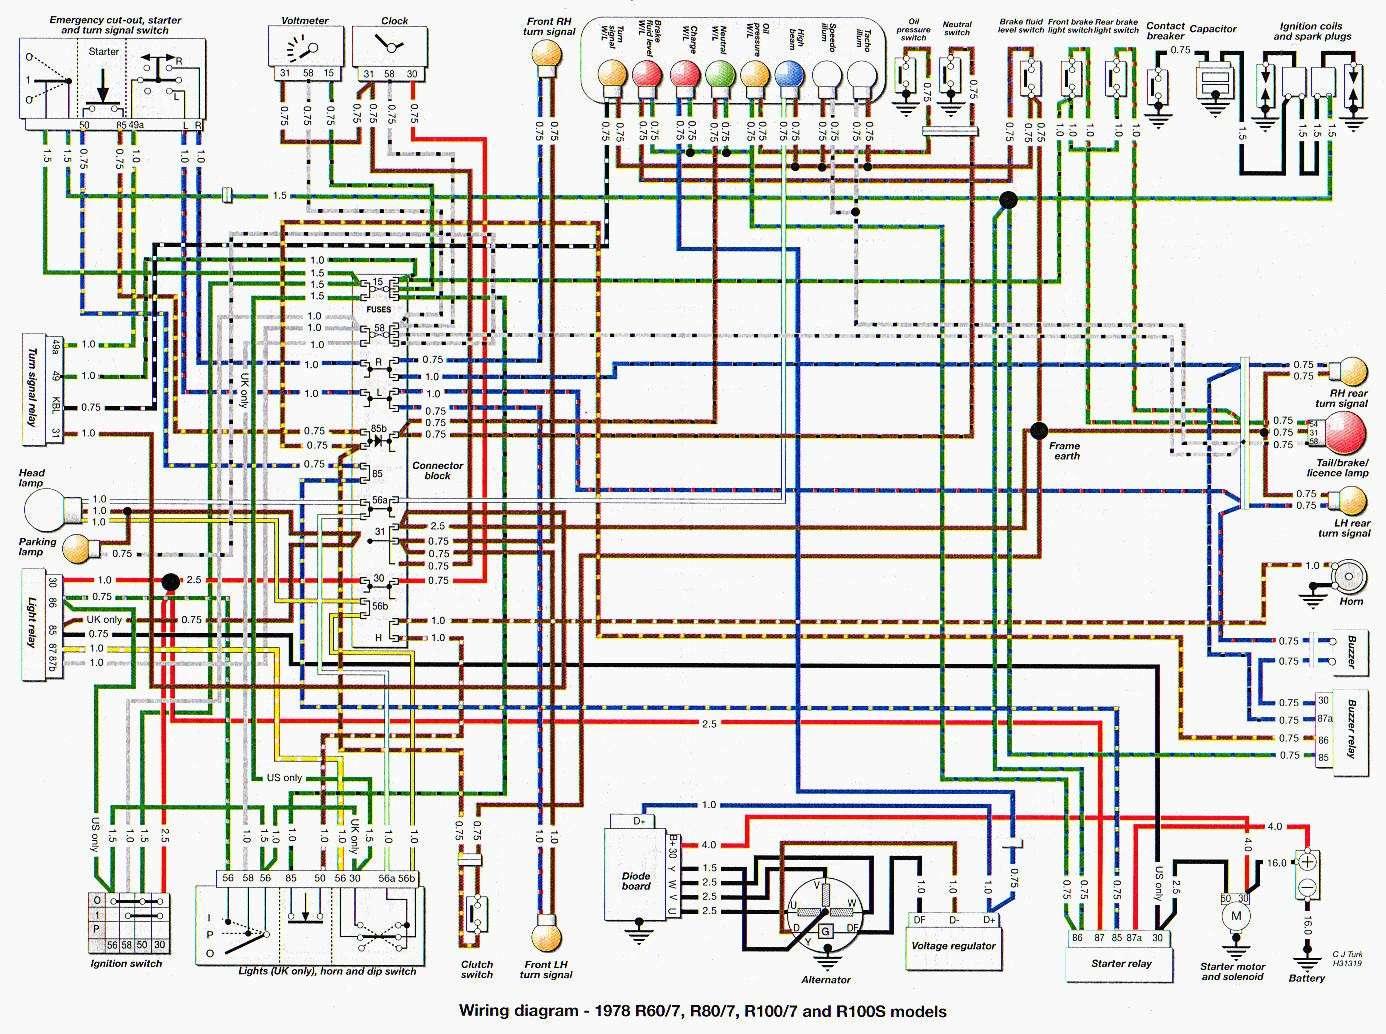 e30 headlight switch wiring diagram dimplex electric baseboard heater bmw r100 rt 7 carénage démonté plus démarré